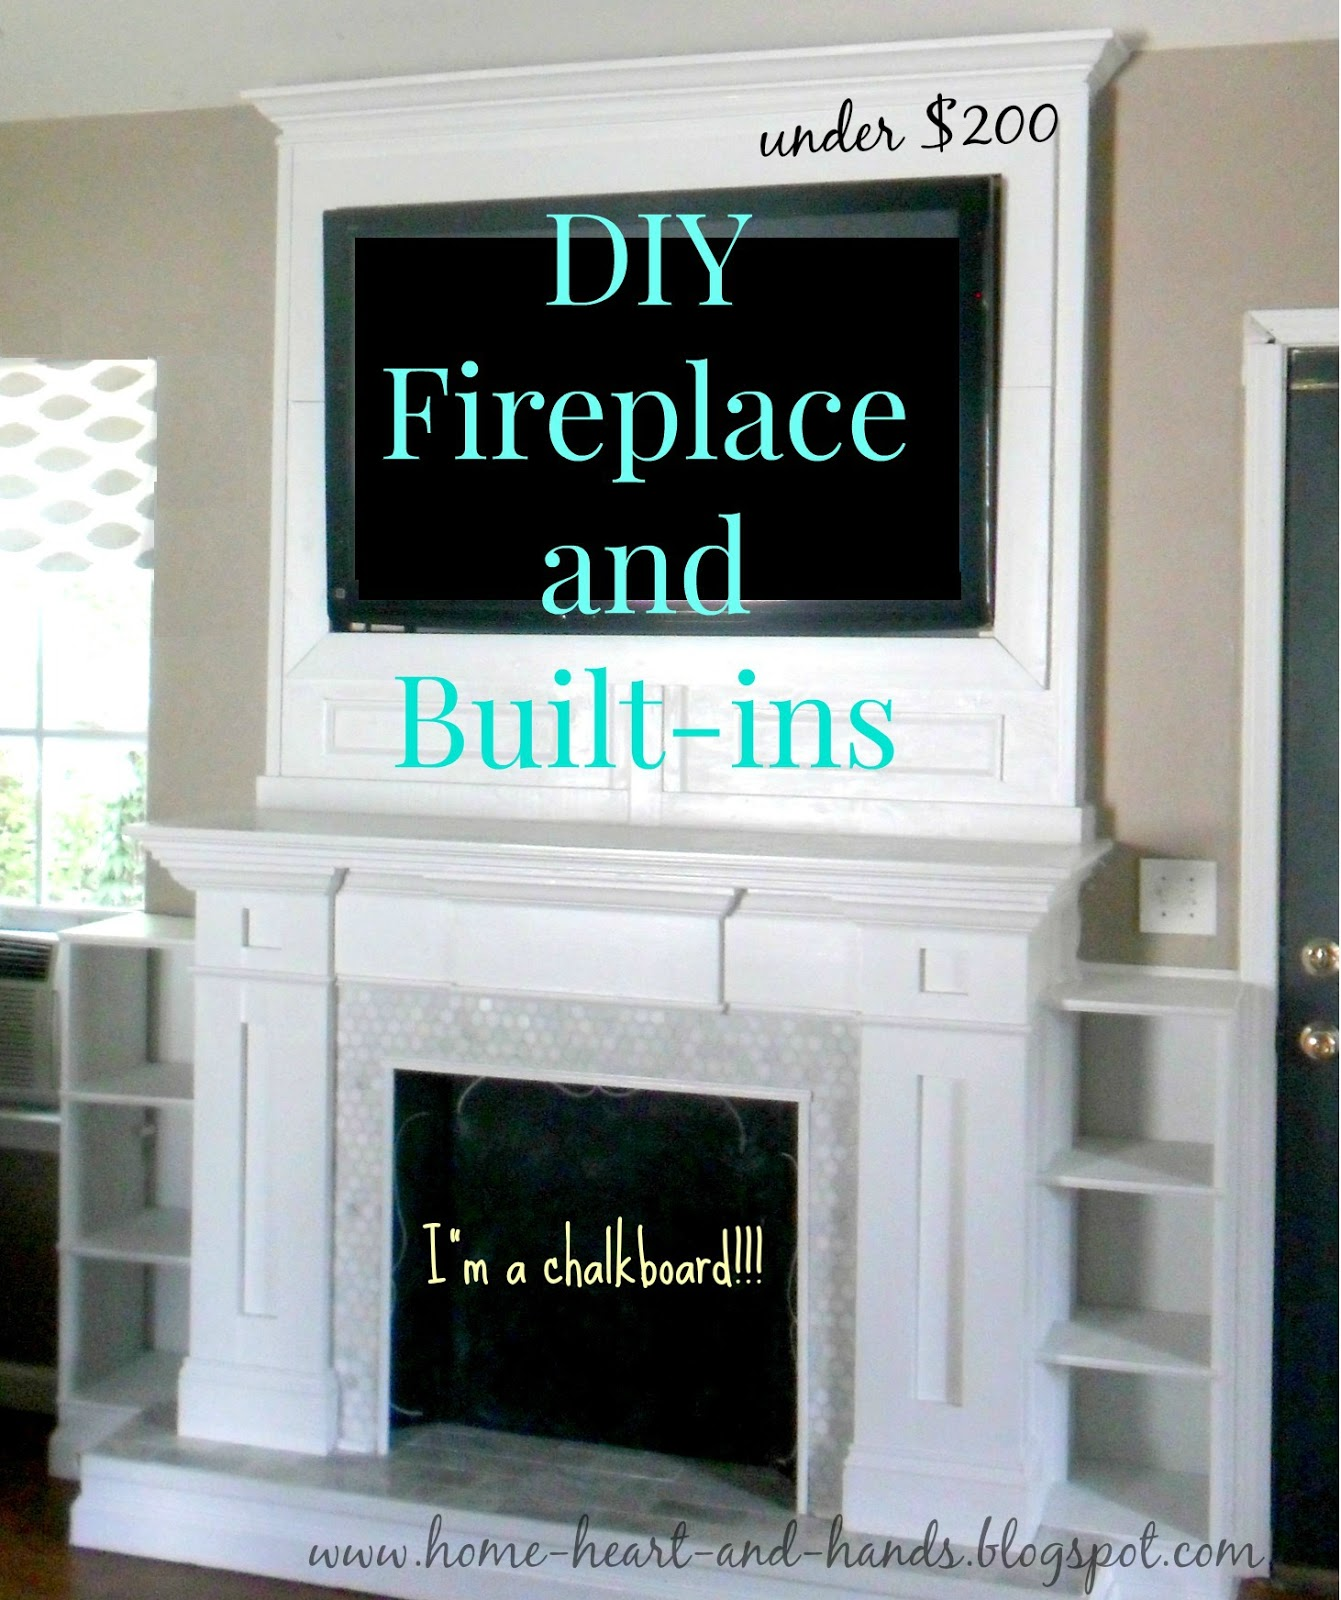 Home Heart and Hands: How to Build a DIY Fireplace